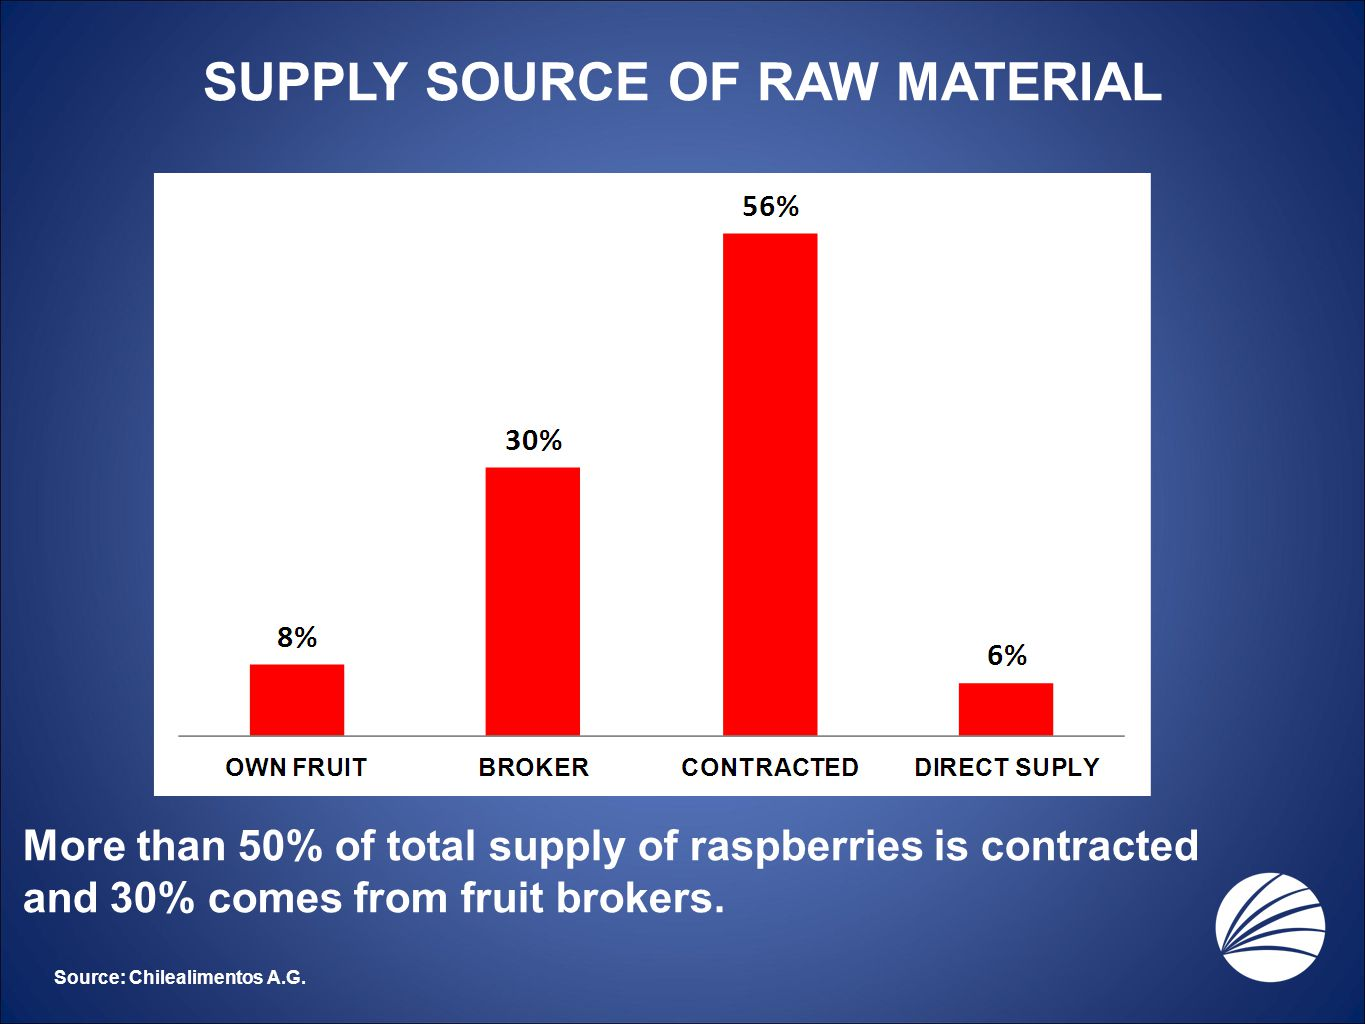 SUPPLY SOURCE OF RAW MATERIAL